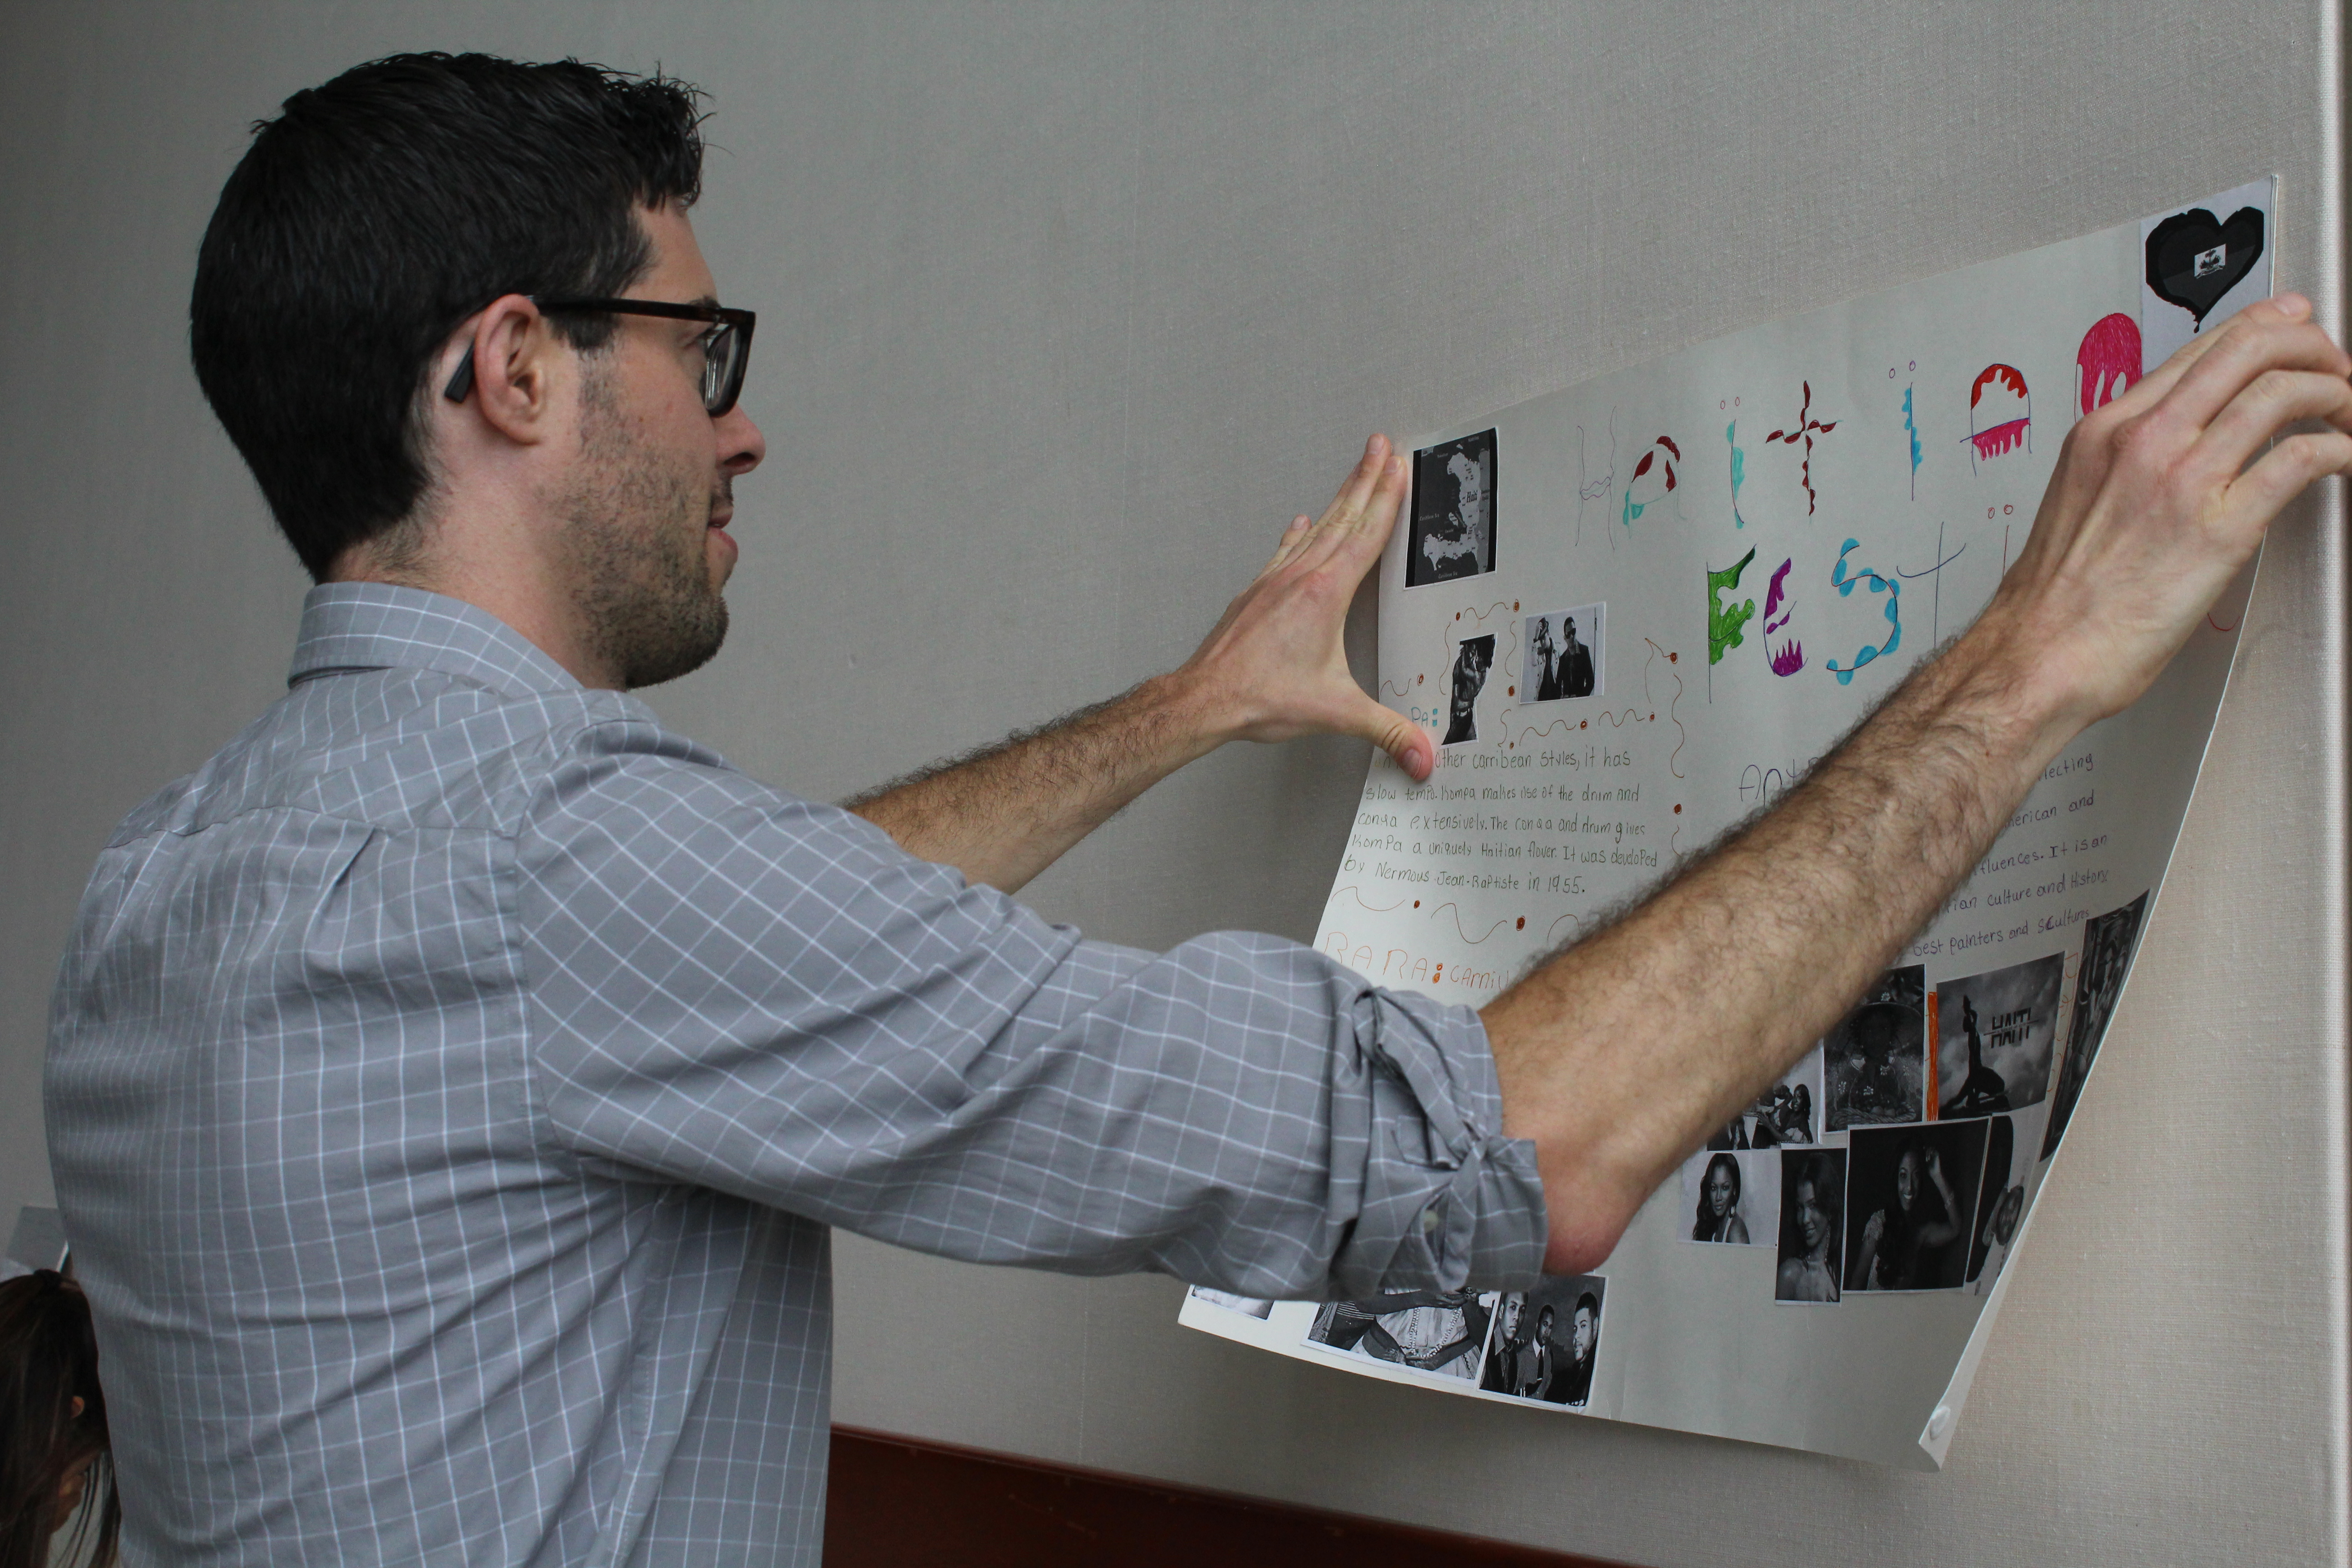 Jeff helps hangs student poster on the wall.